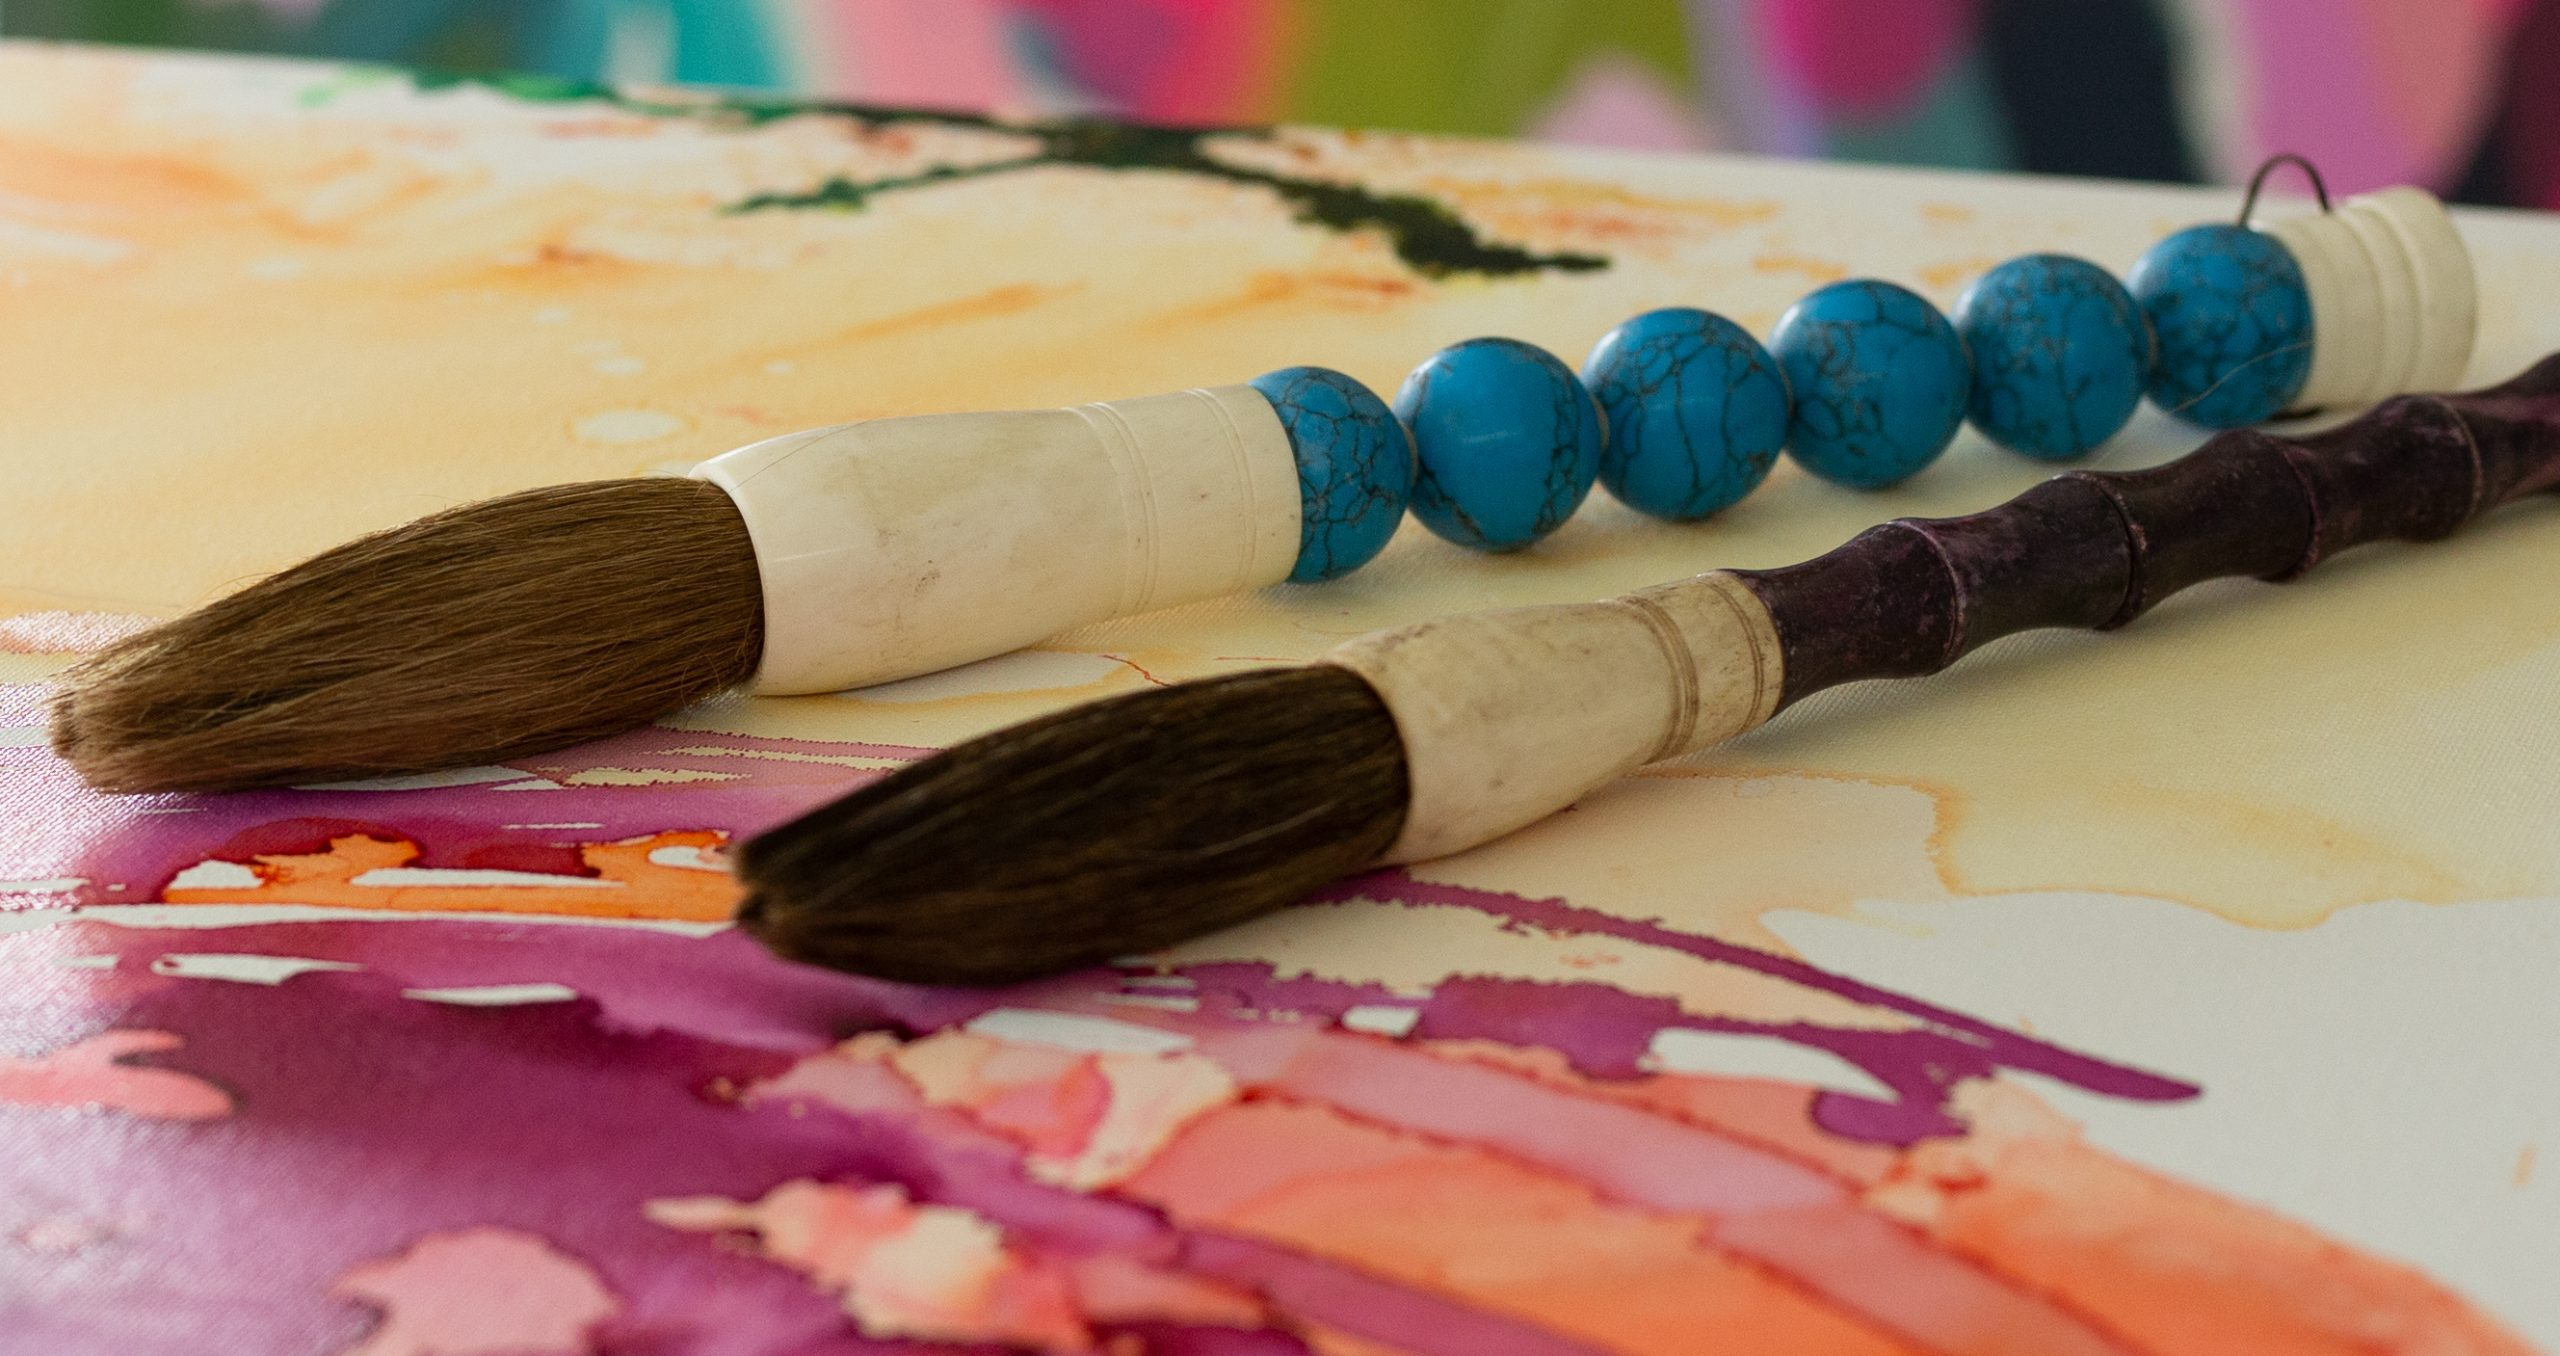 The Zen Paint Brushes by Pro Hart Swagger